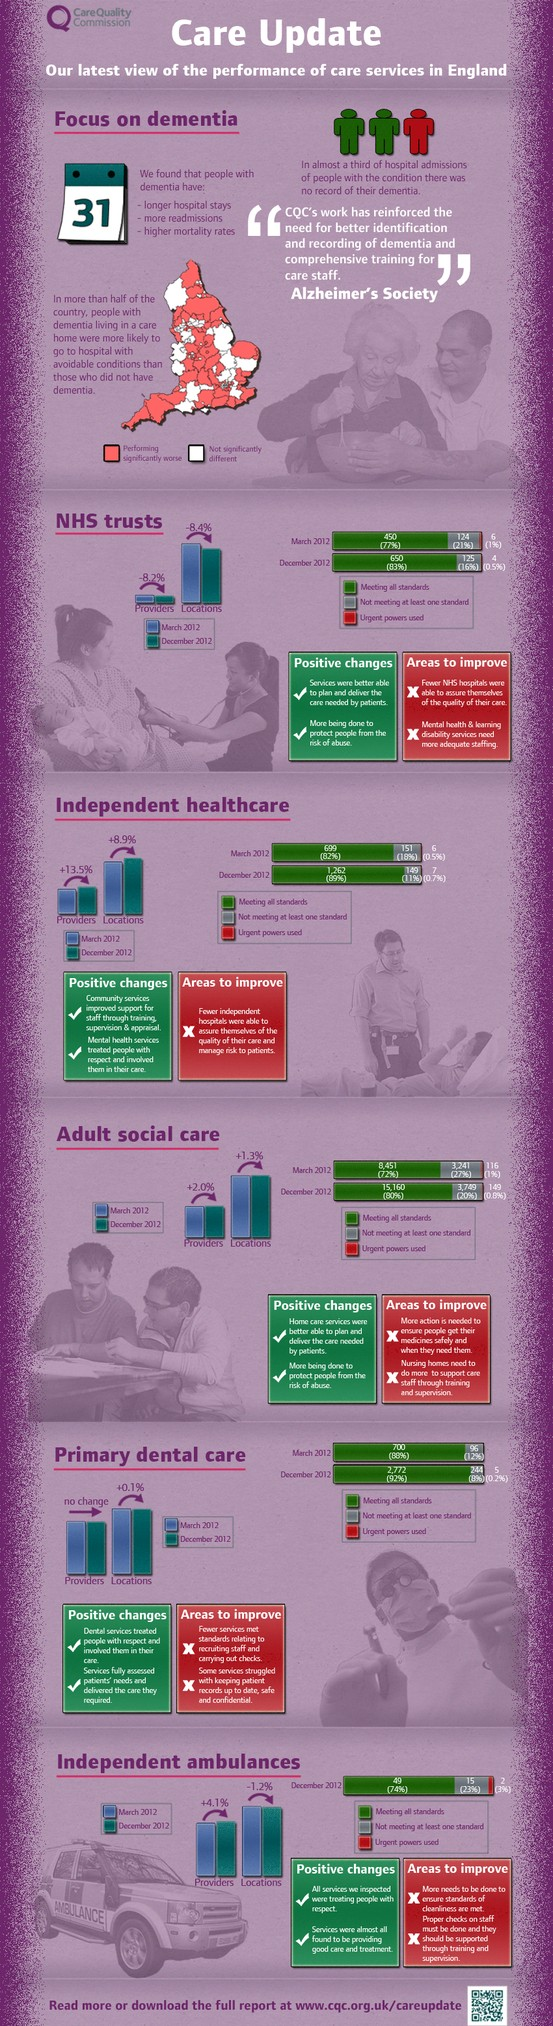 Care update from the UK Care Quality Commission care